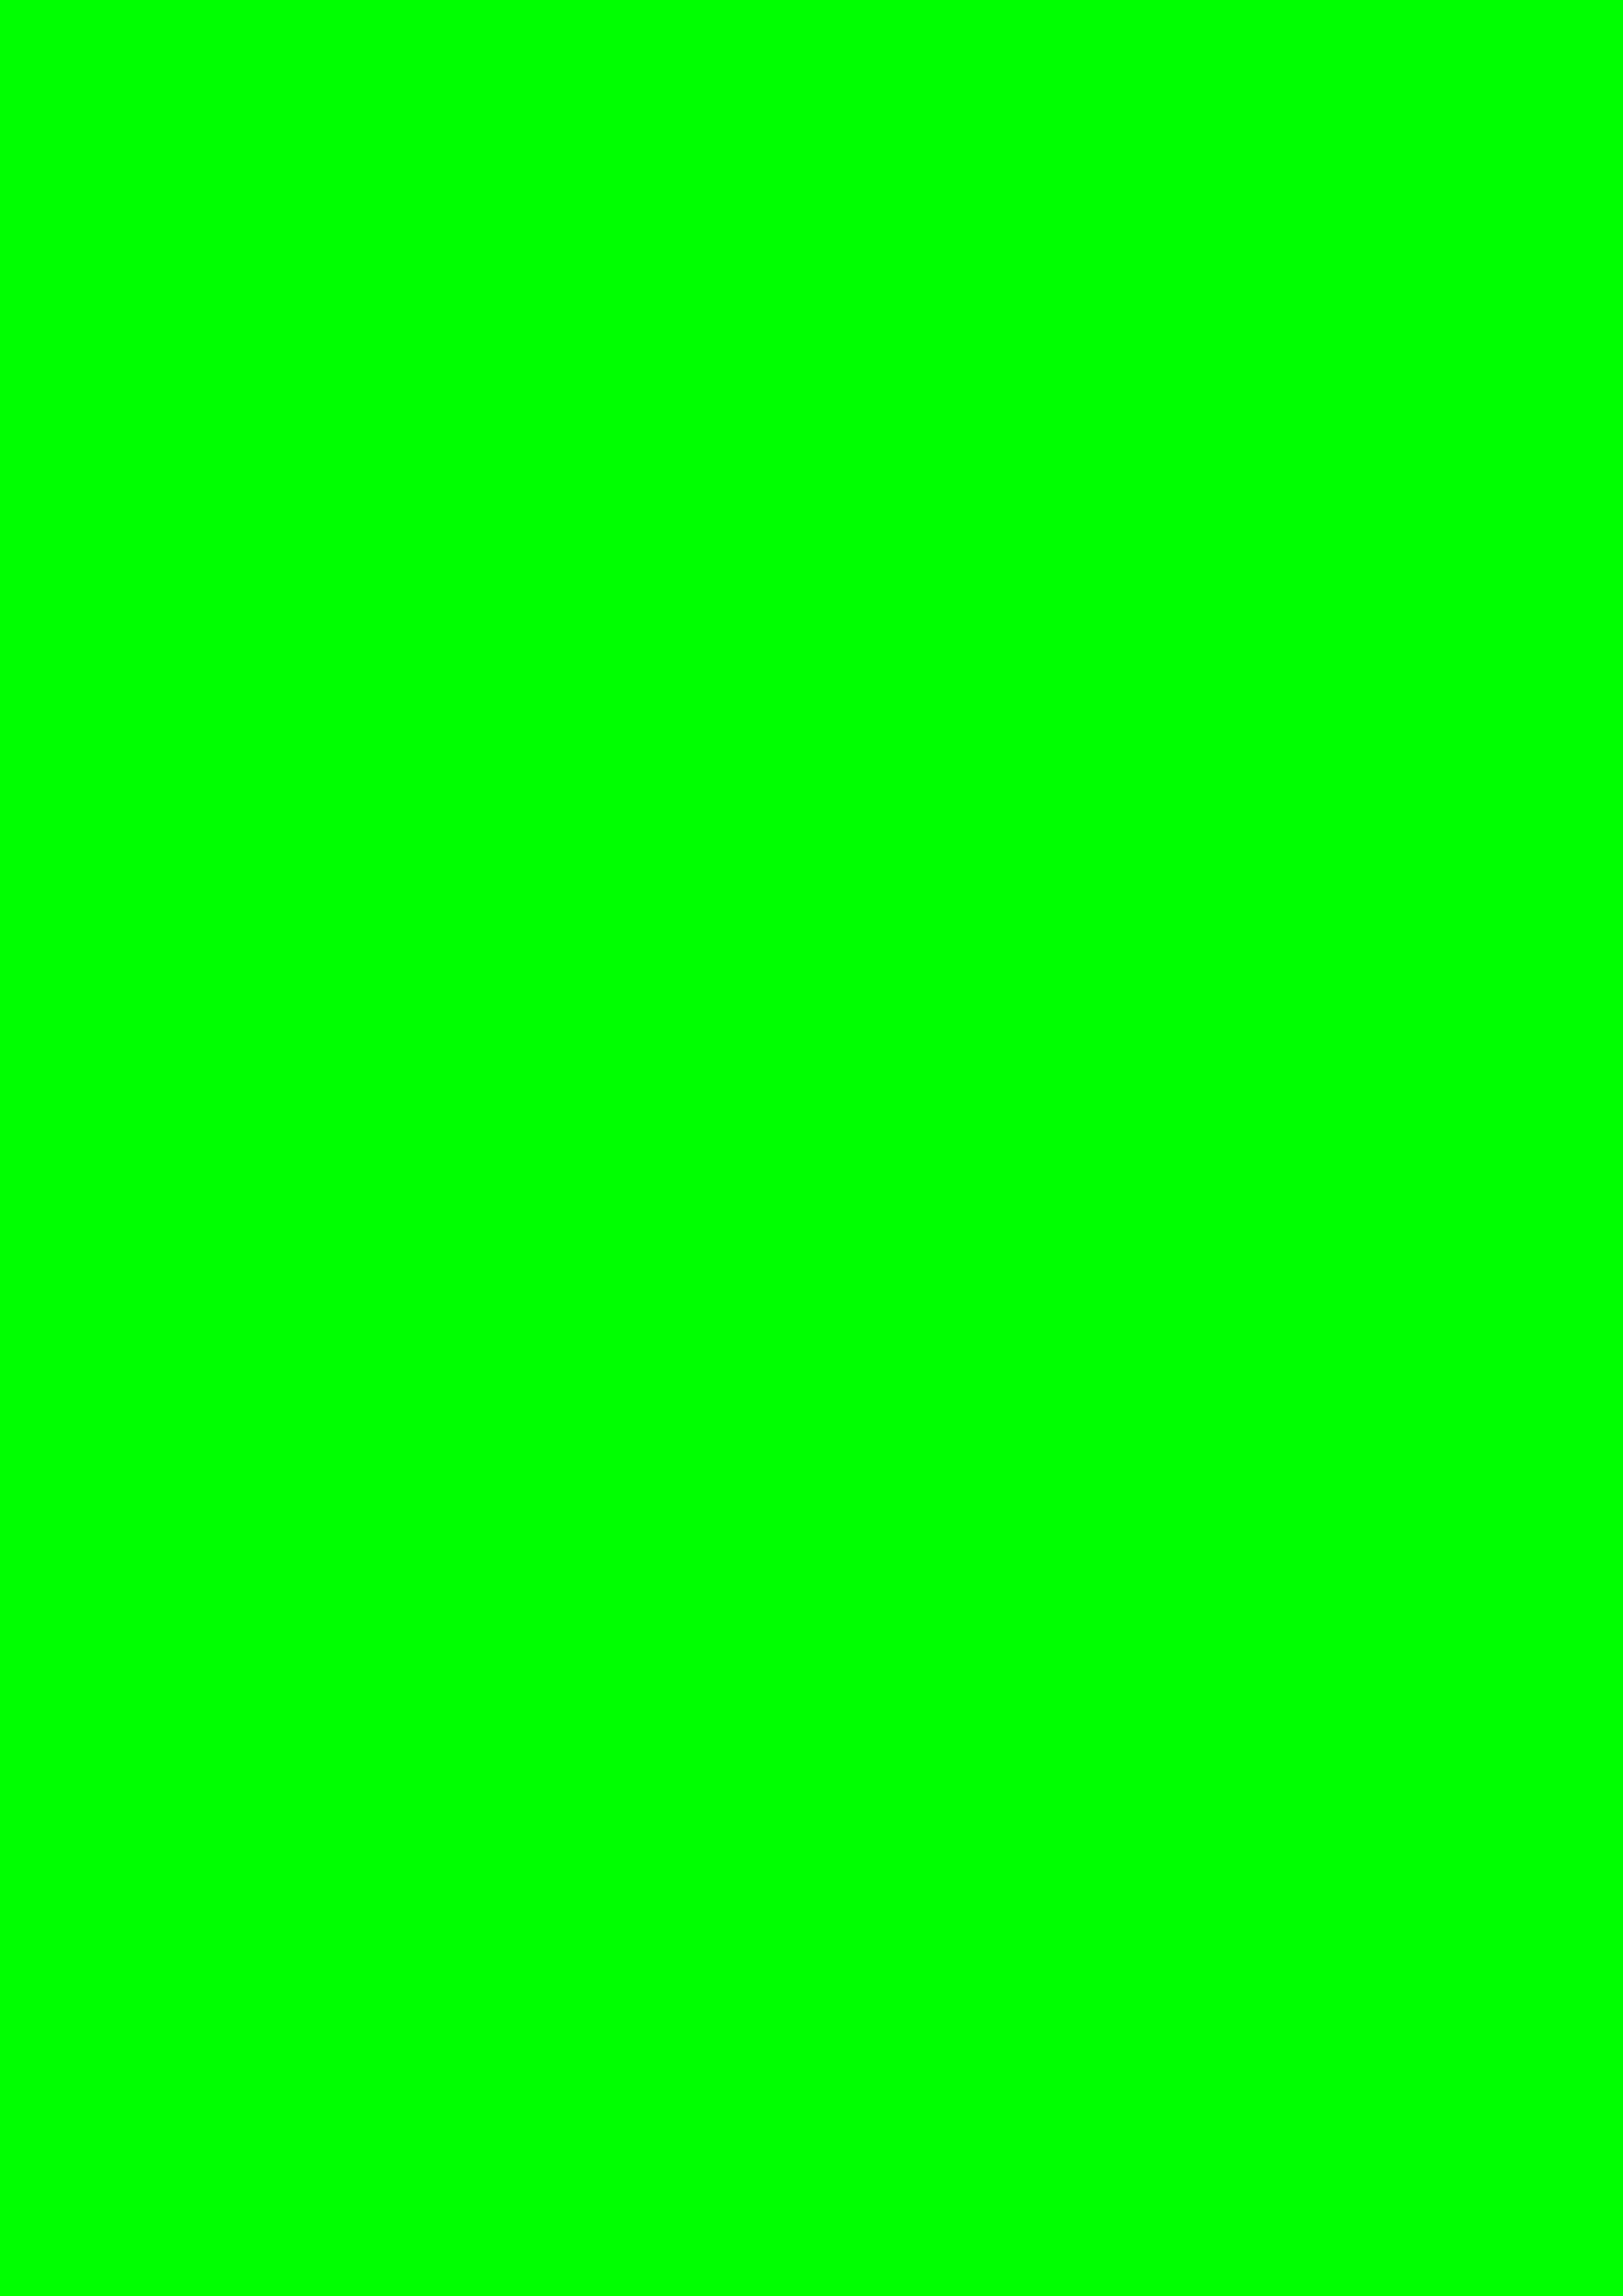 2480x3508 Lime Web Green Solid Color Background